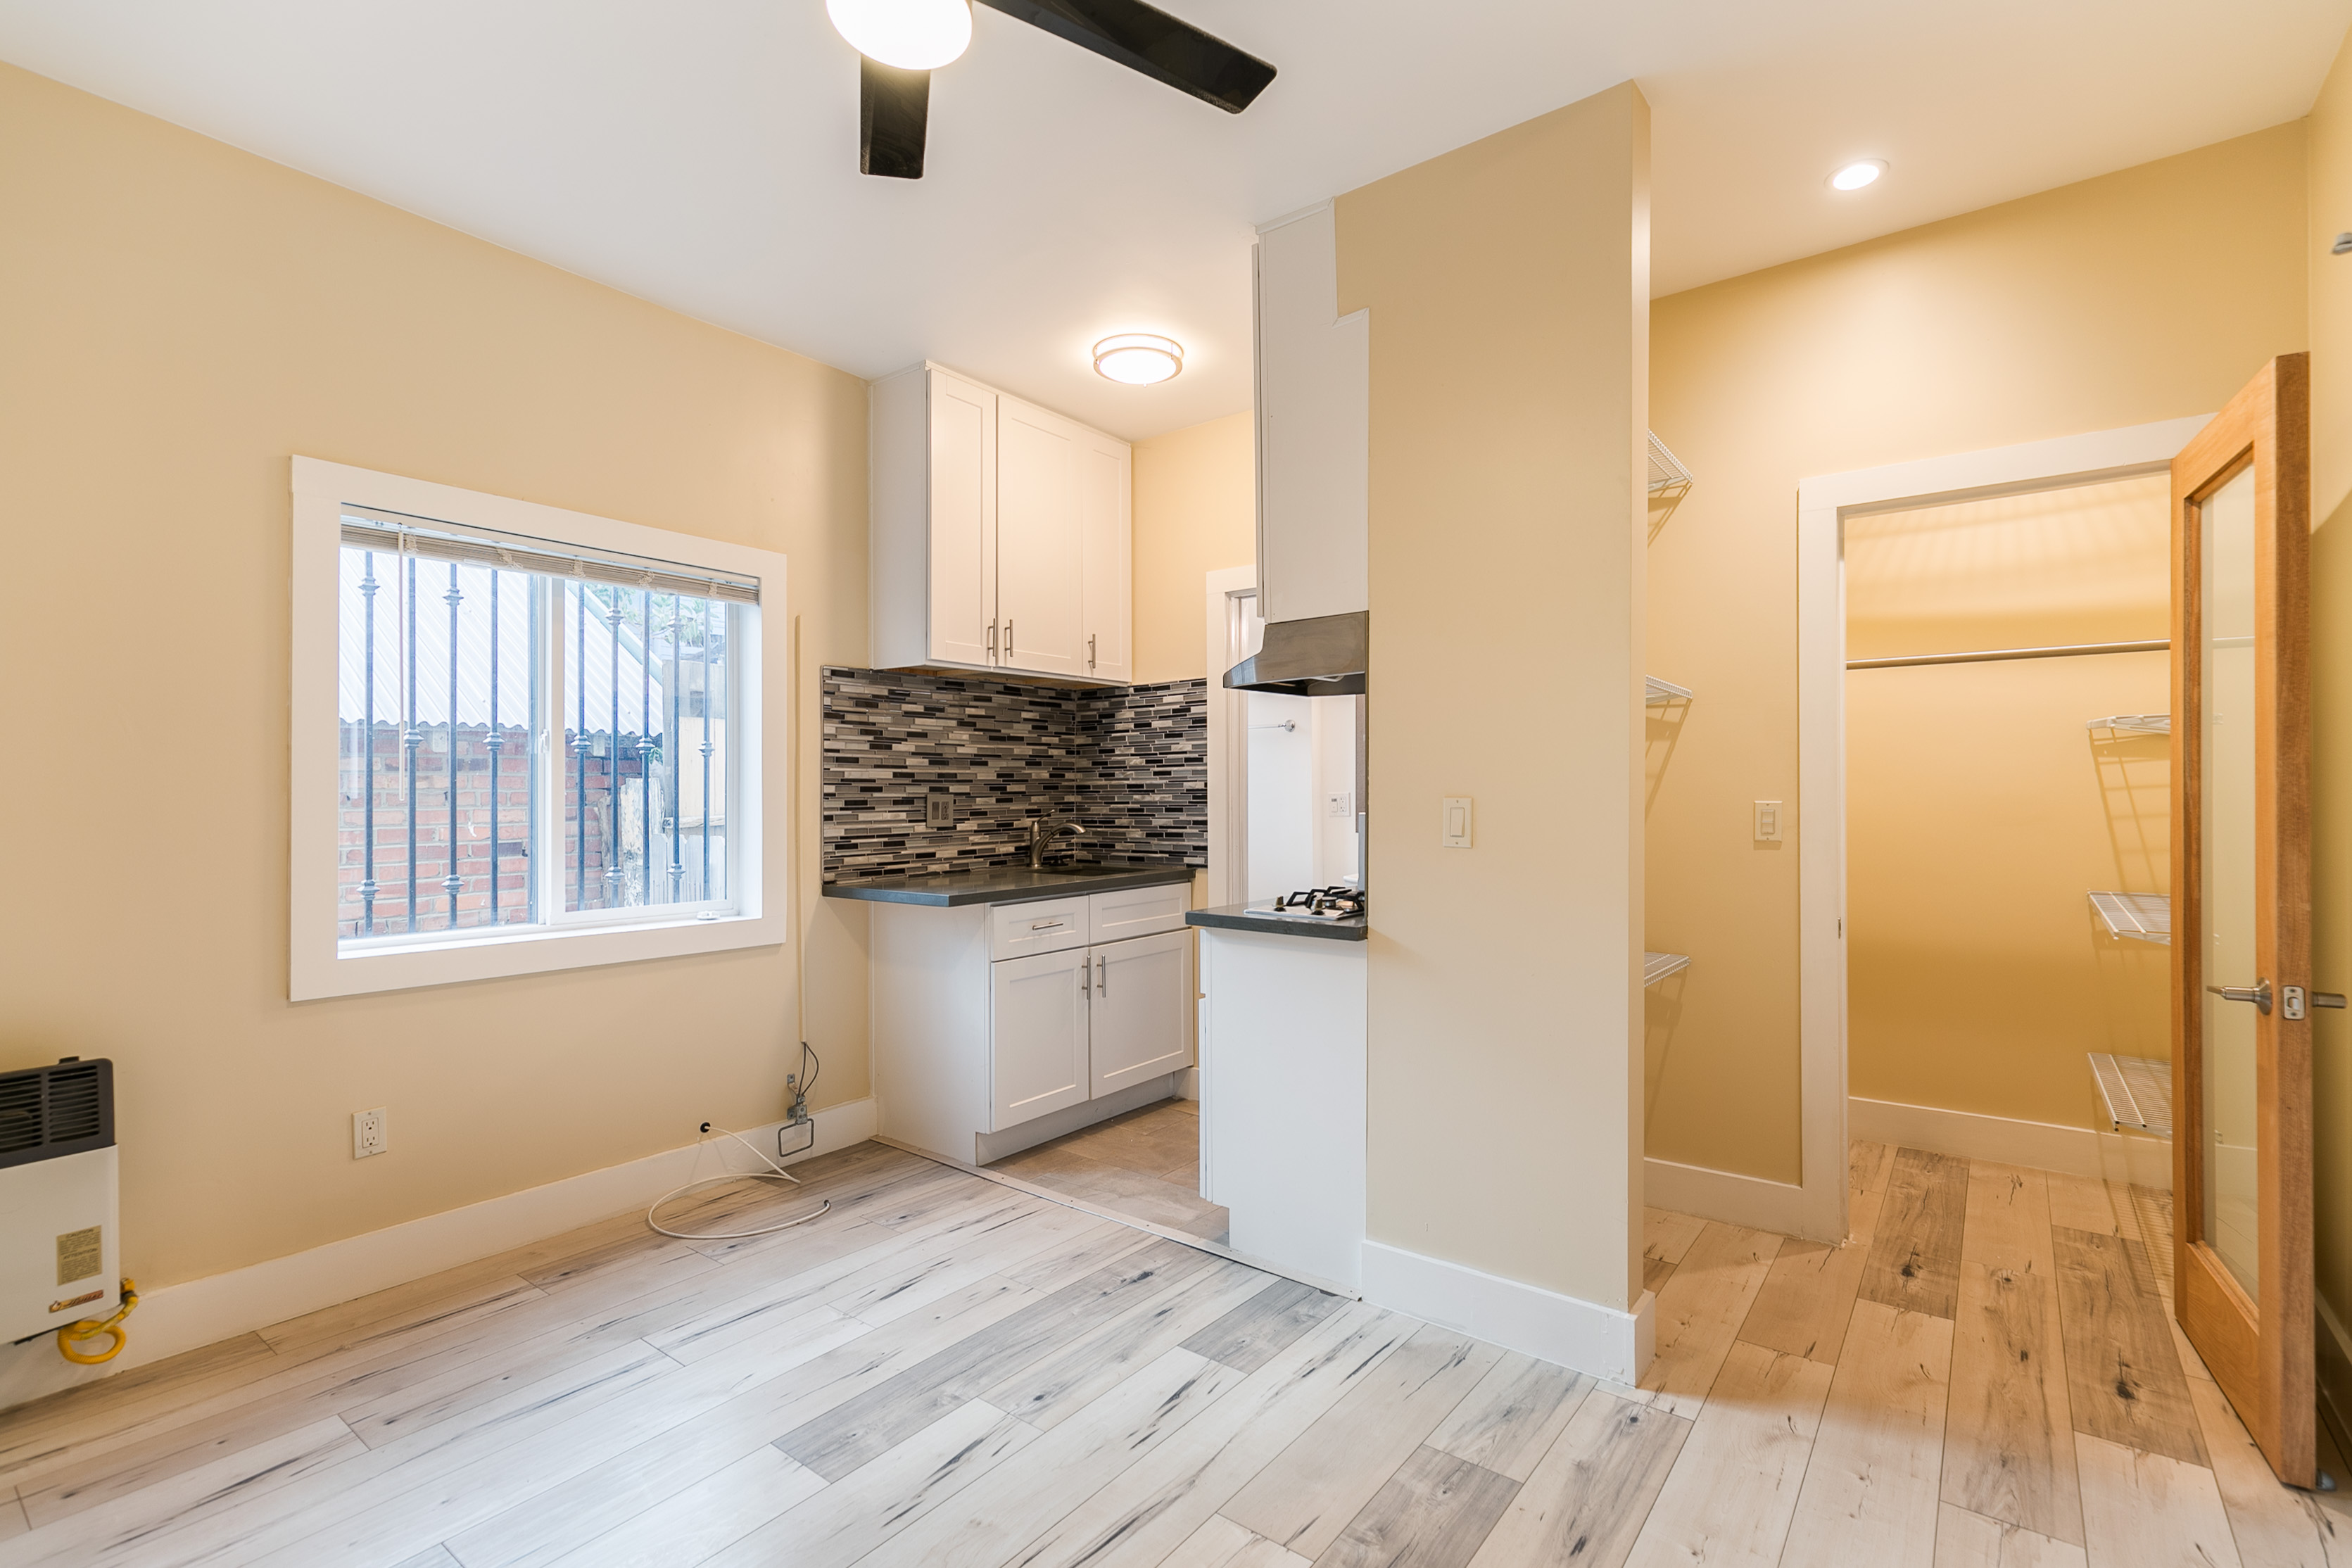 Modern Studio with Kitchenette Near Venice Beach | All New | Washer/Dryer IN UNIT